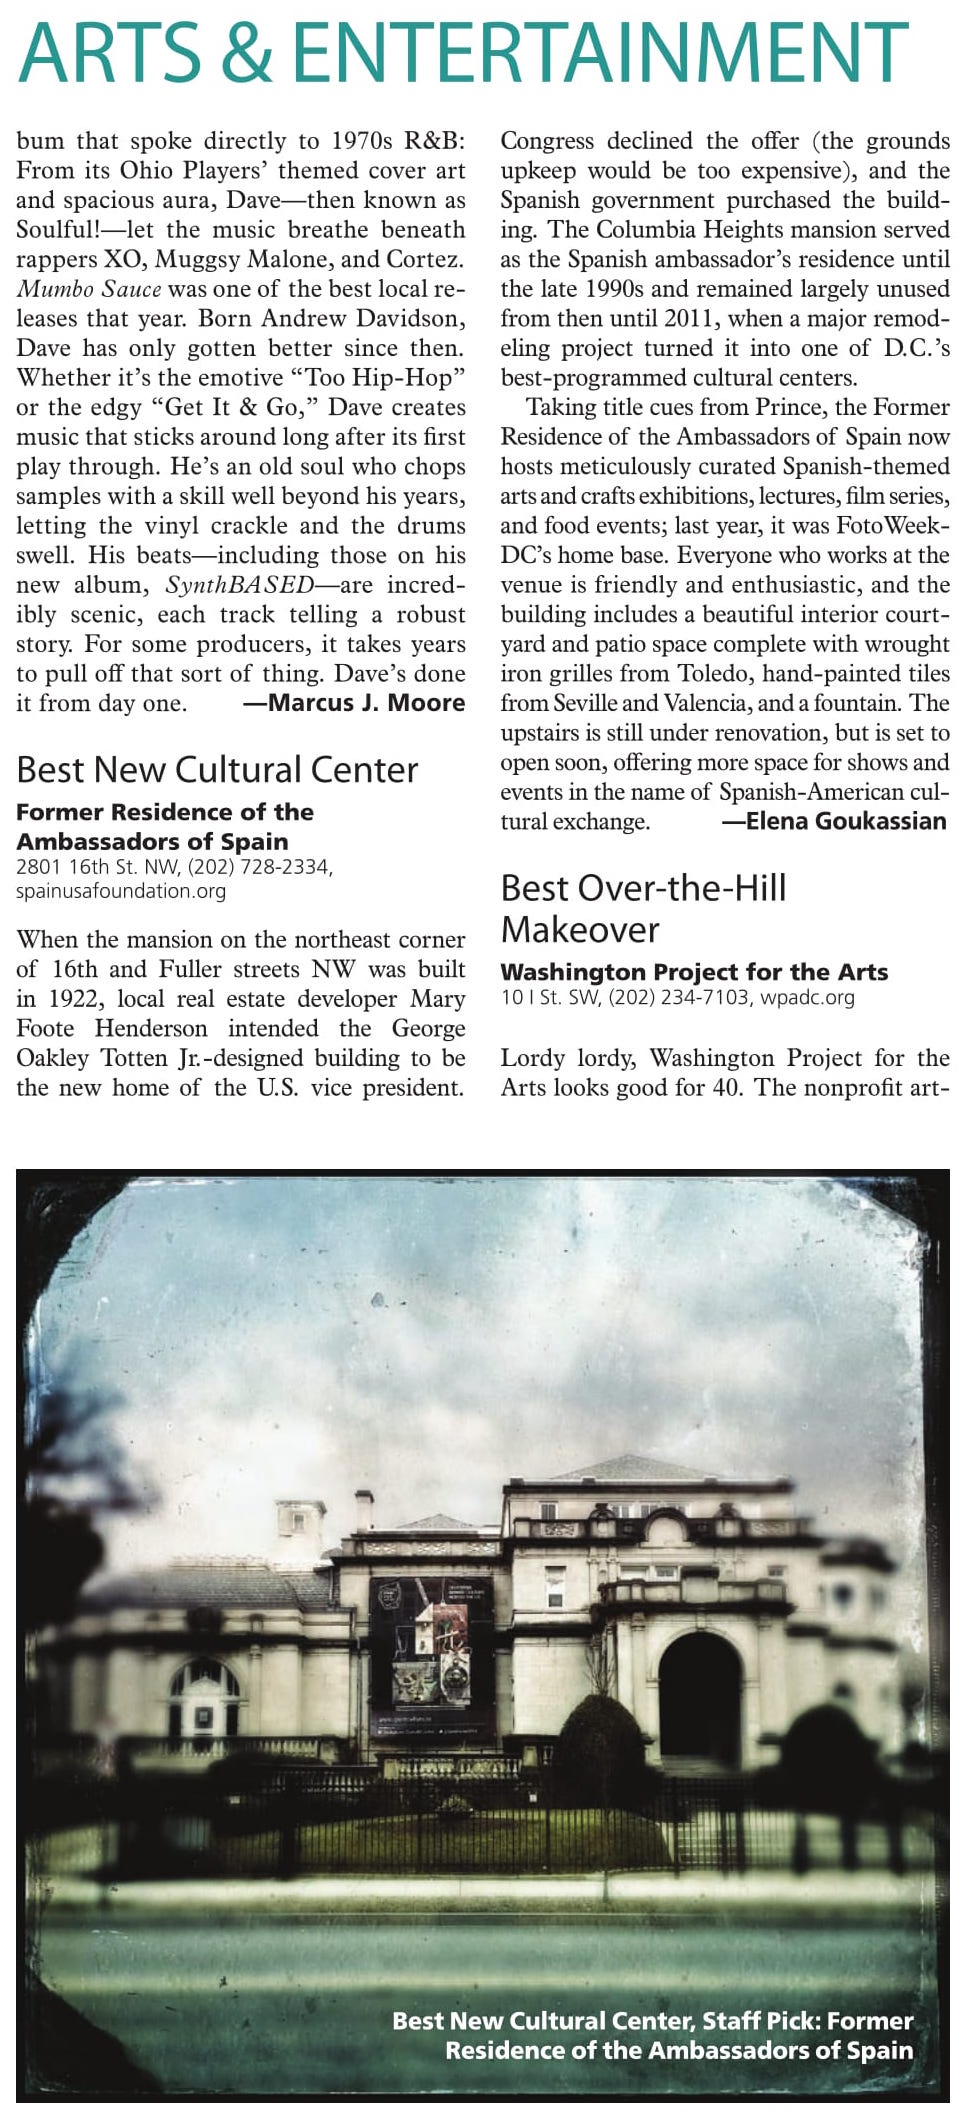 http://legacy.washingtoncitypaper.com/bestofdc/artsandentertainment/2015/best-new-cultural-center